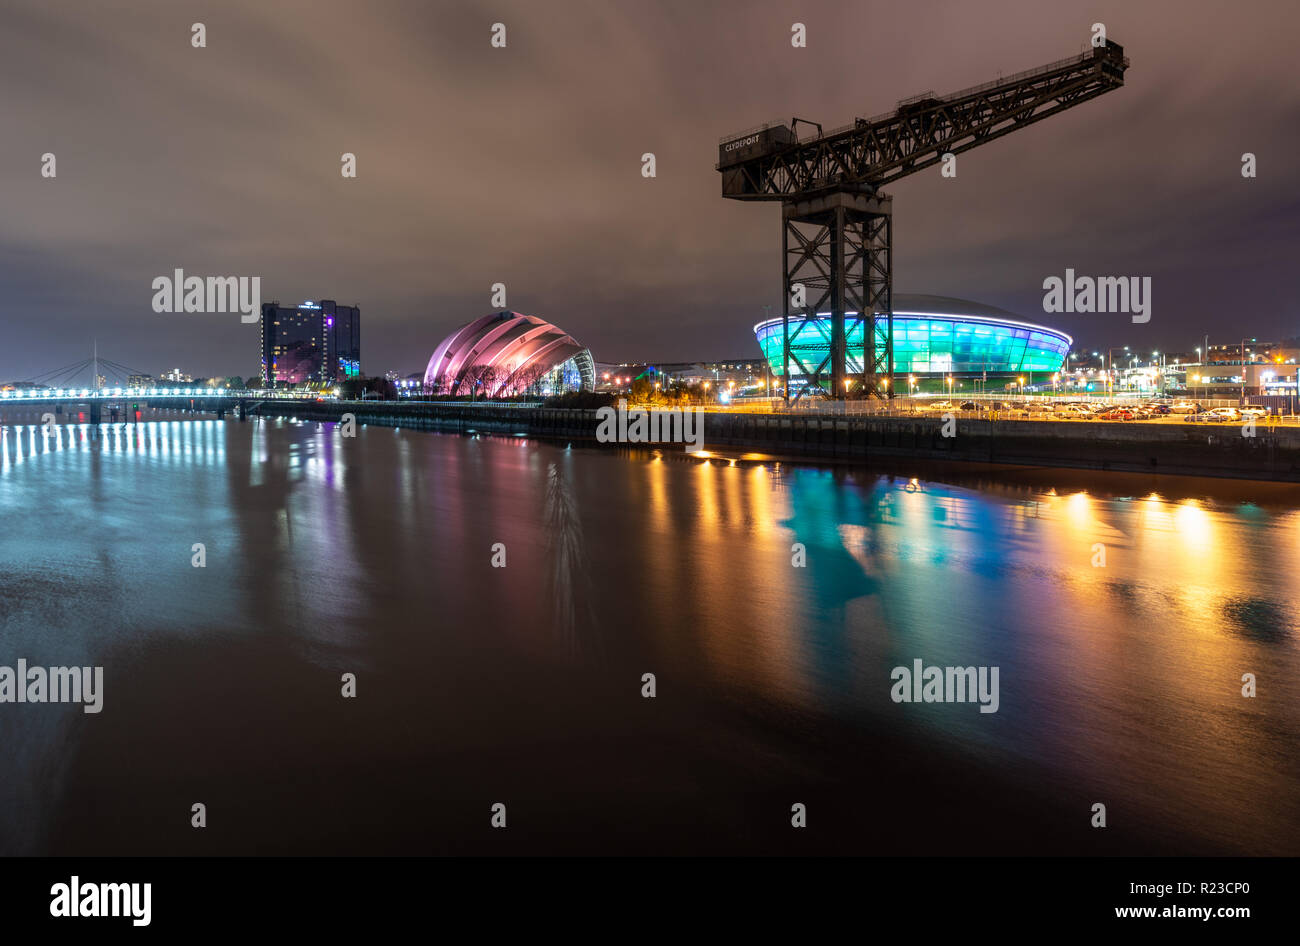 Glasgow, Scotland, UK - November 6, 2018: - Stock Image